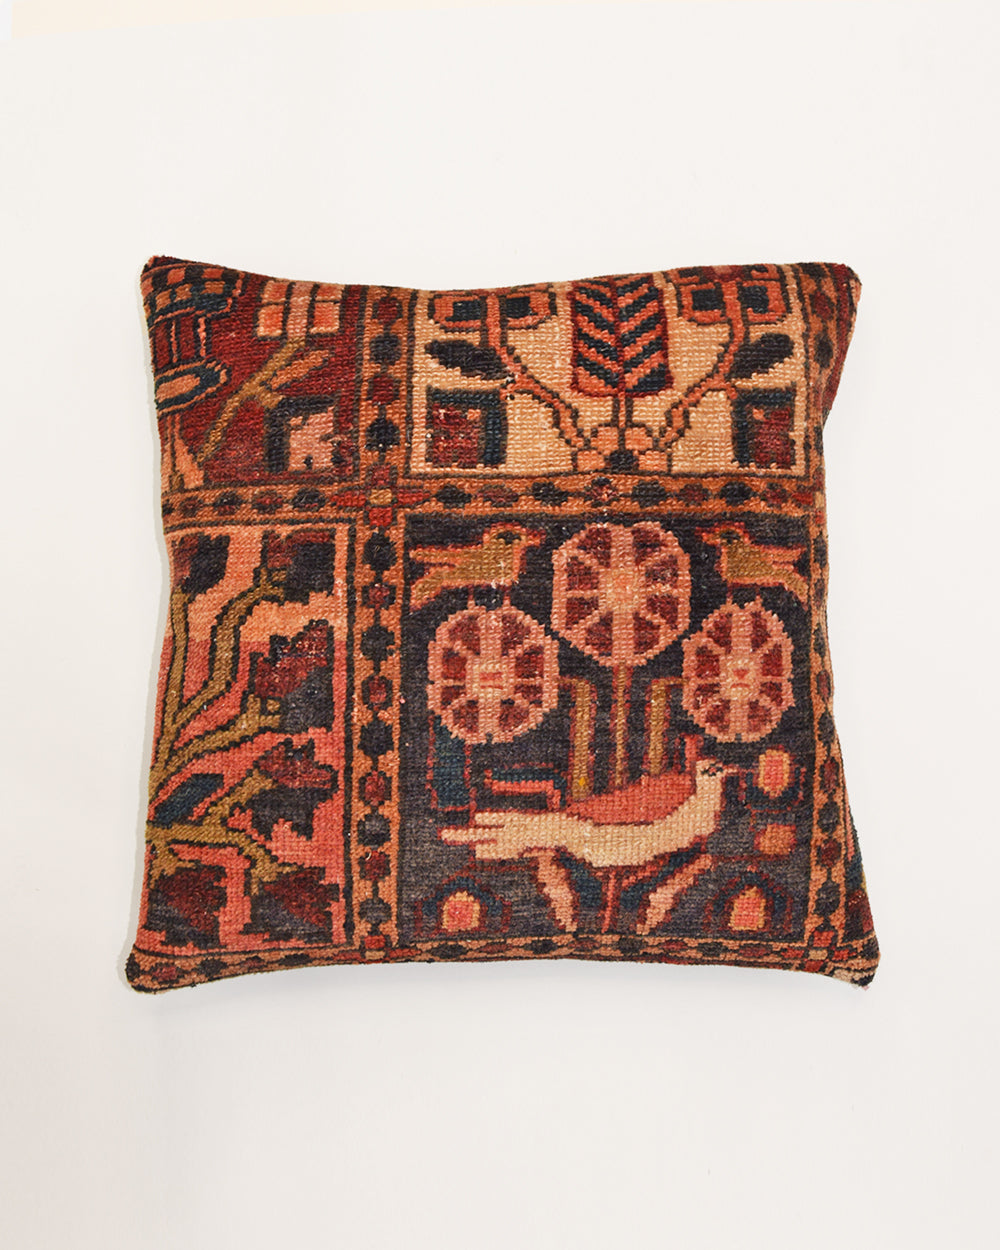 Rug Cushion Cover No. 16